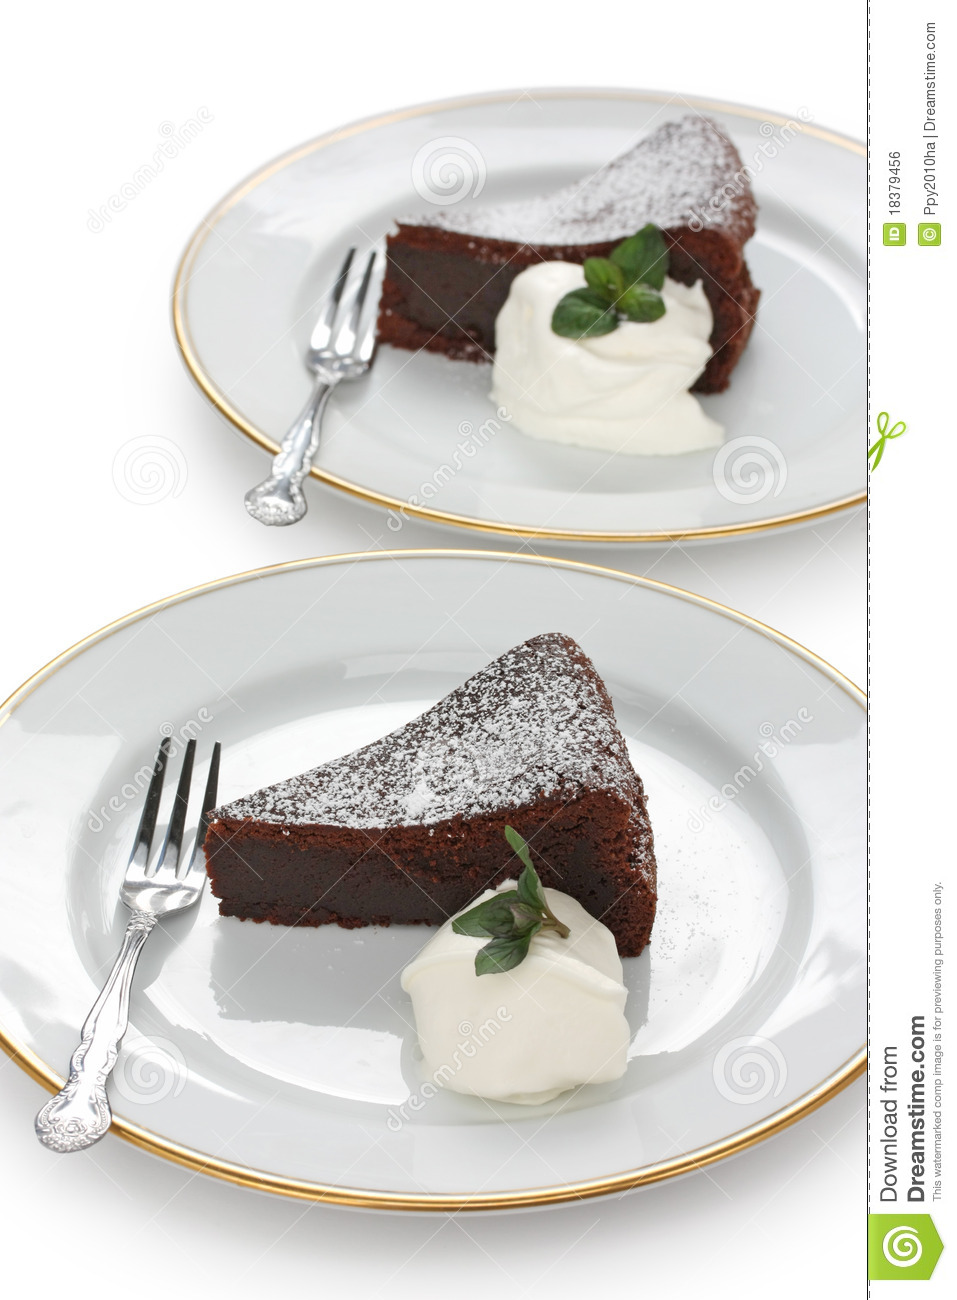 Chocolate Fallen Souffle Cake Royalty Free Stock Image - Image ...